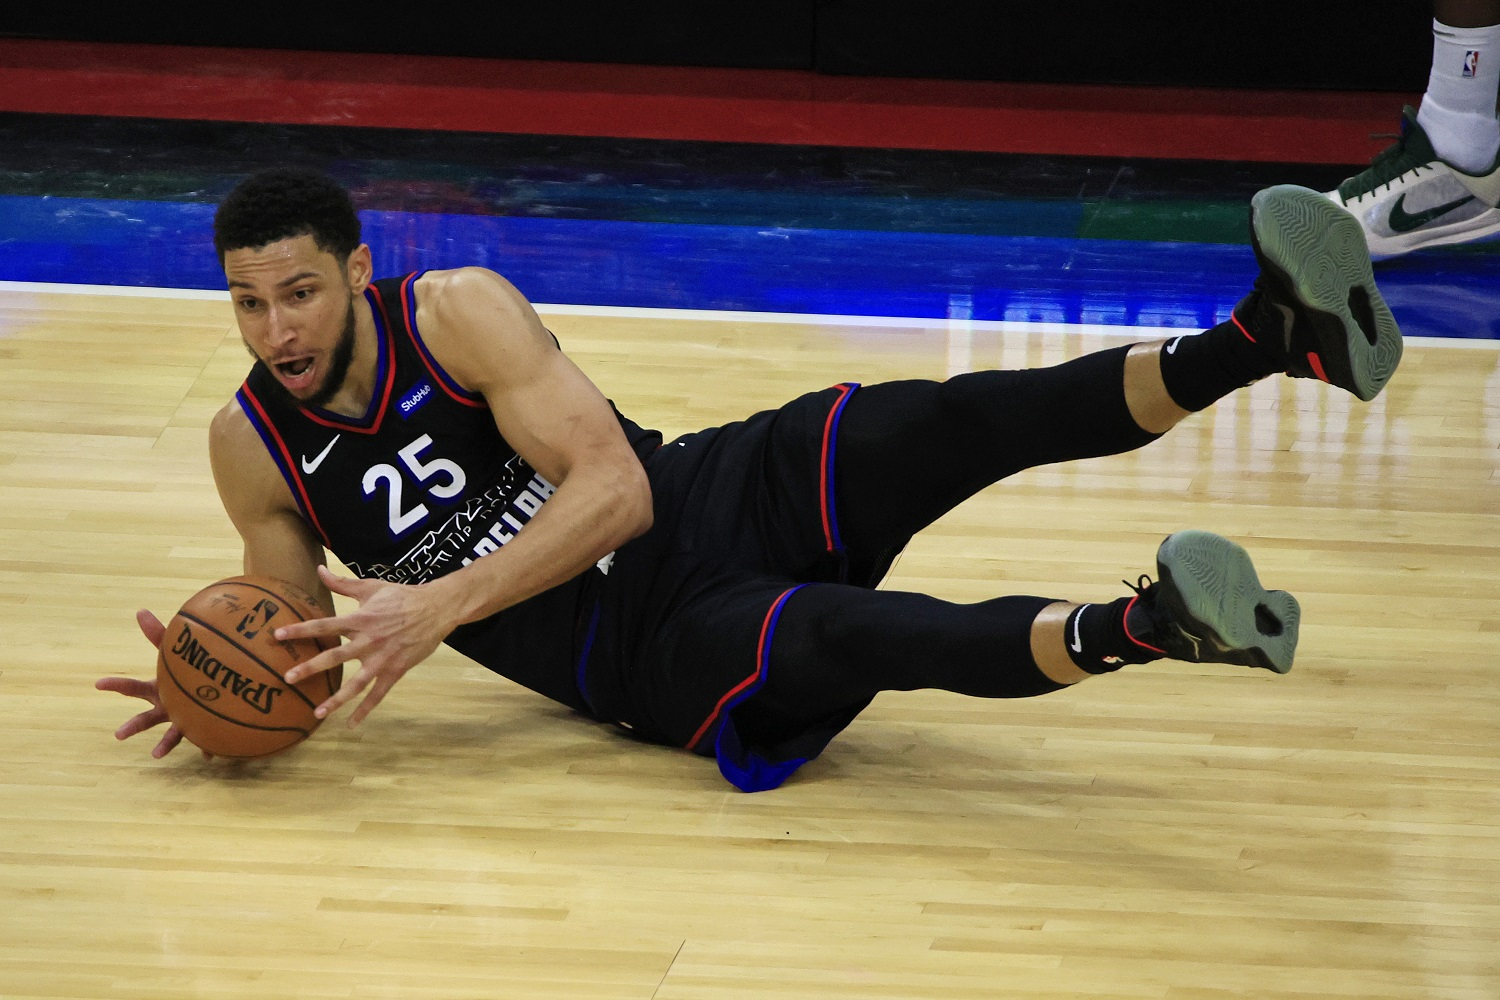 Former No. 1 draft pick Ben Simmons is in his fourth season with the Philadelphia 76ers. |  Corey Perrine/Getty Images